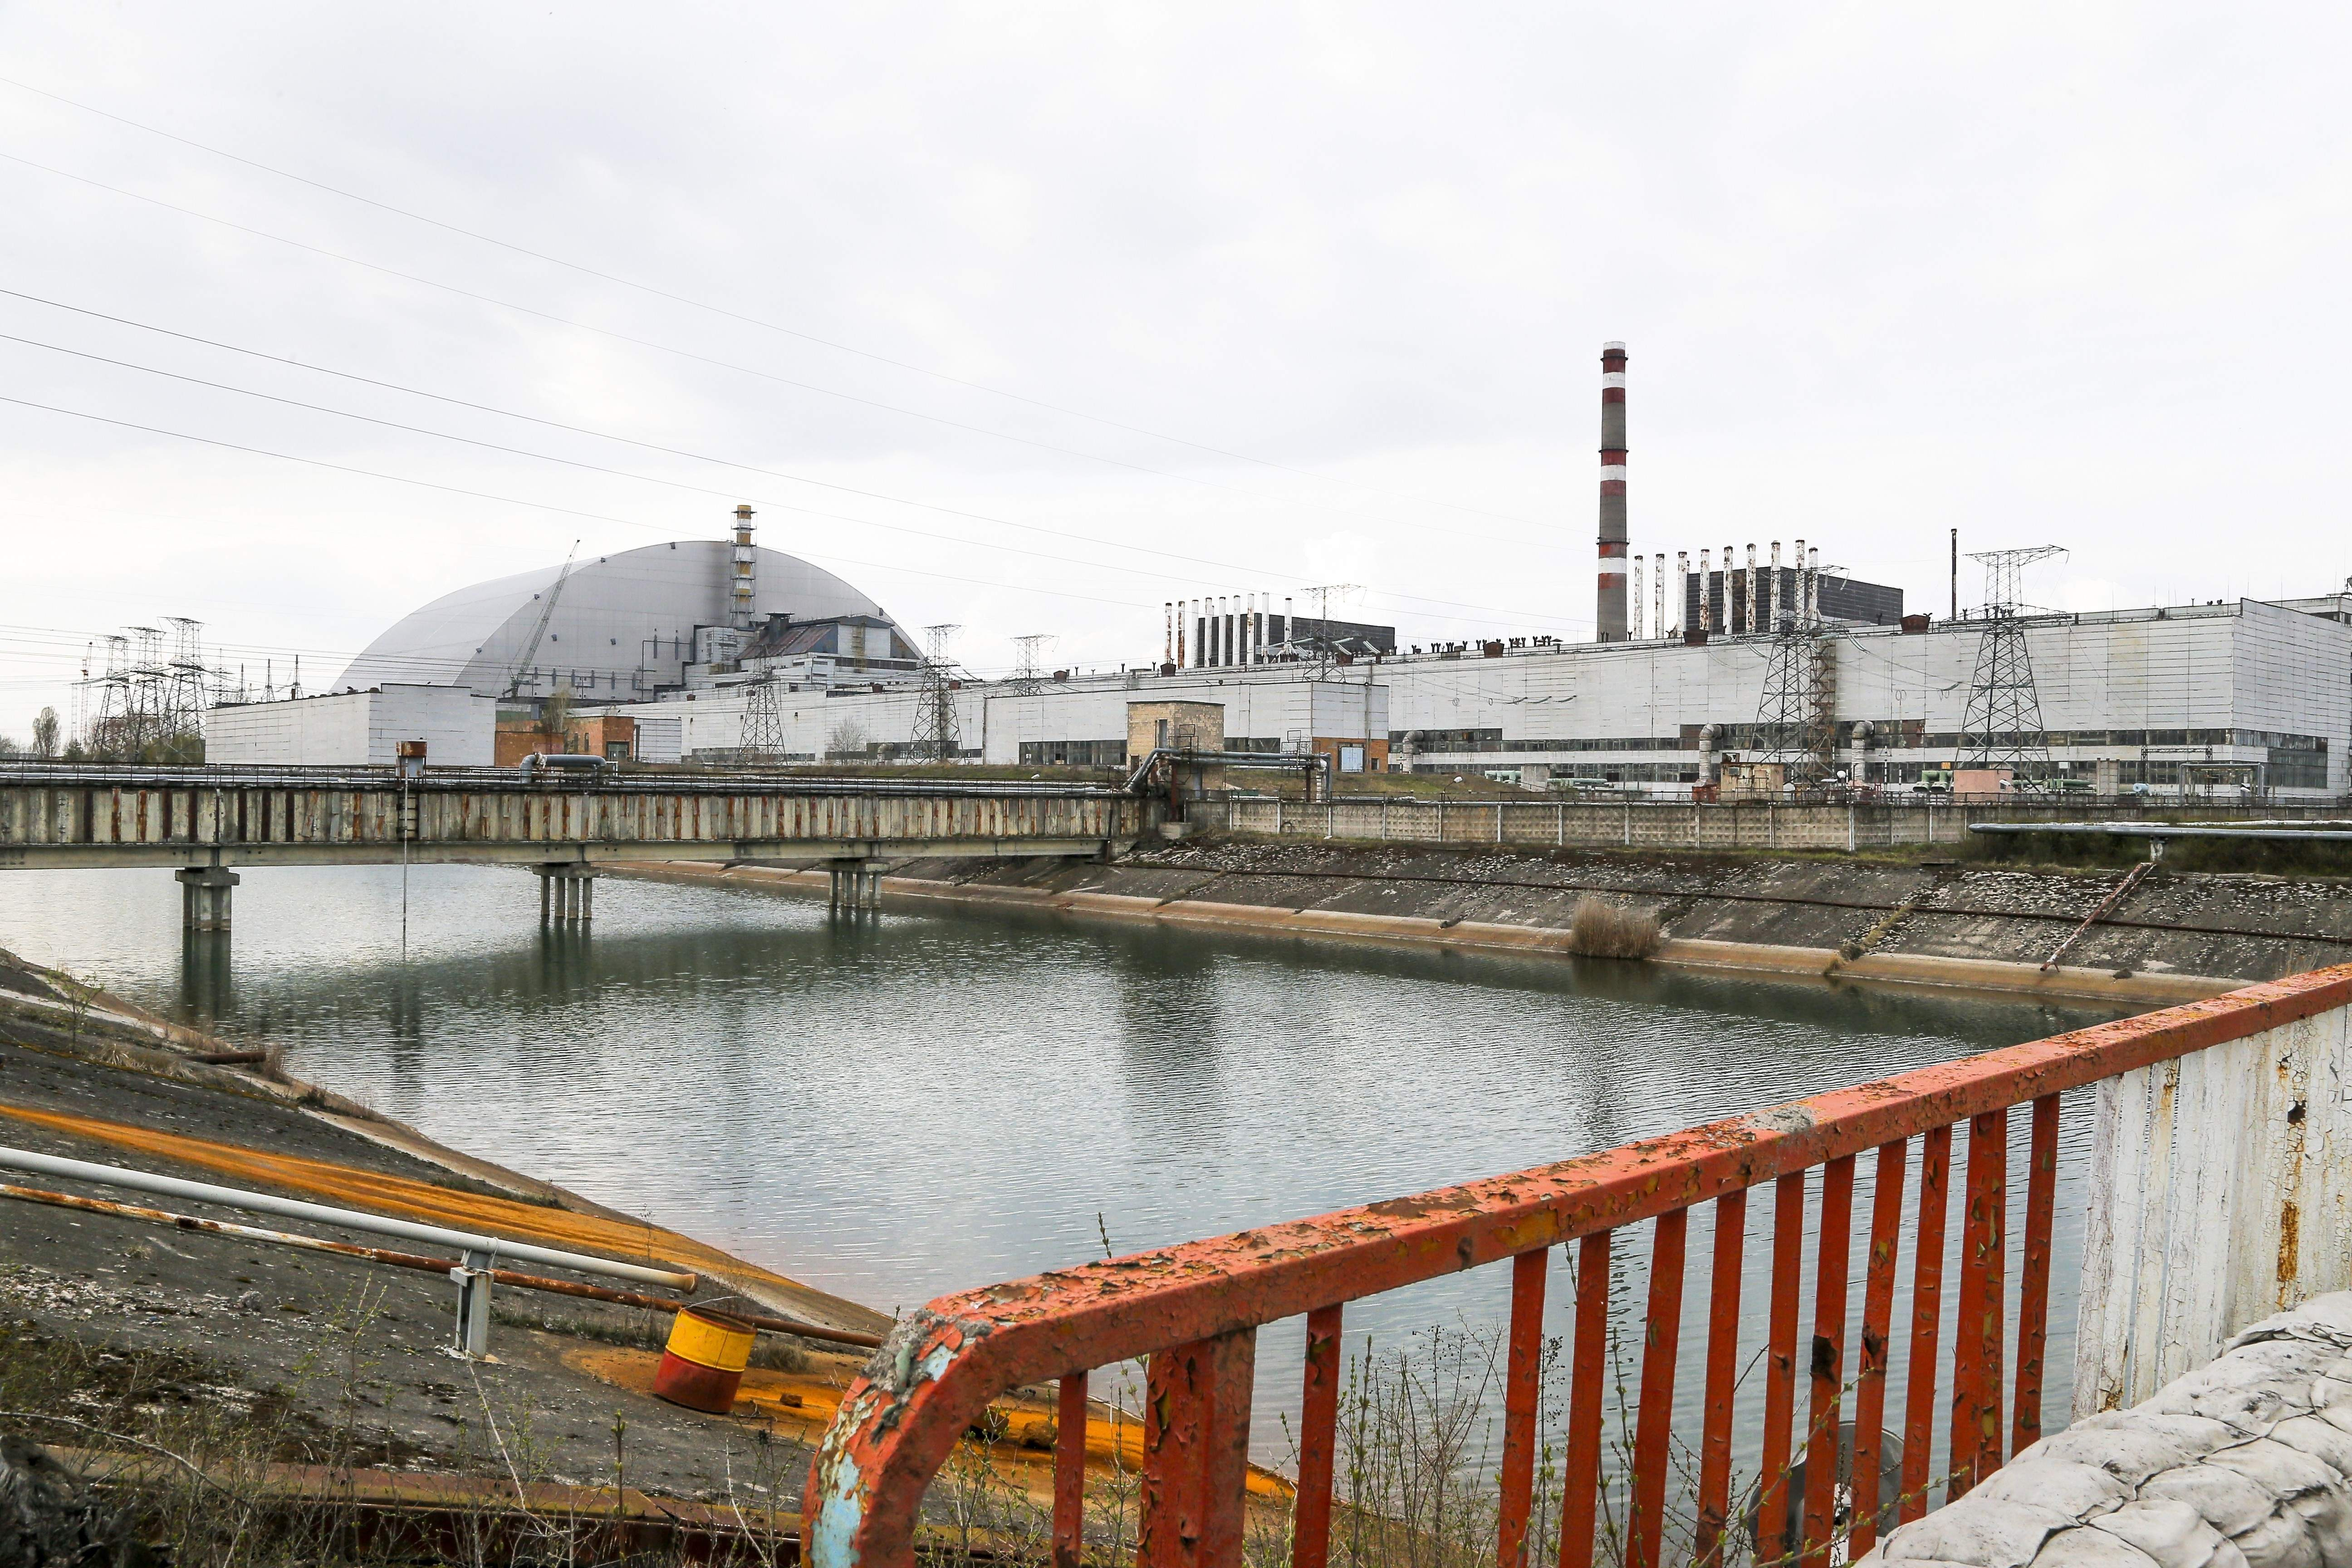 In this photo taken Wednesday, April 5, 2017, a new shelter is installed over the exploded reactor at the Chernobyl nuclear plant, in Chernobyl, Ukraine. April 26 marks the 31st anniversary of the Chernobyl nuclear disaster. A reactor at the Chernobyl nuclear power plant exploded on April 26, 1986, leading to an explosion and the subsequent fire spewed a radioactive plume over much of northern Europe. THE ASSOCIATED PRESS